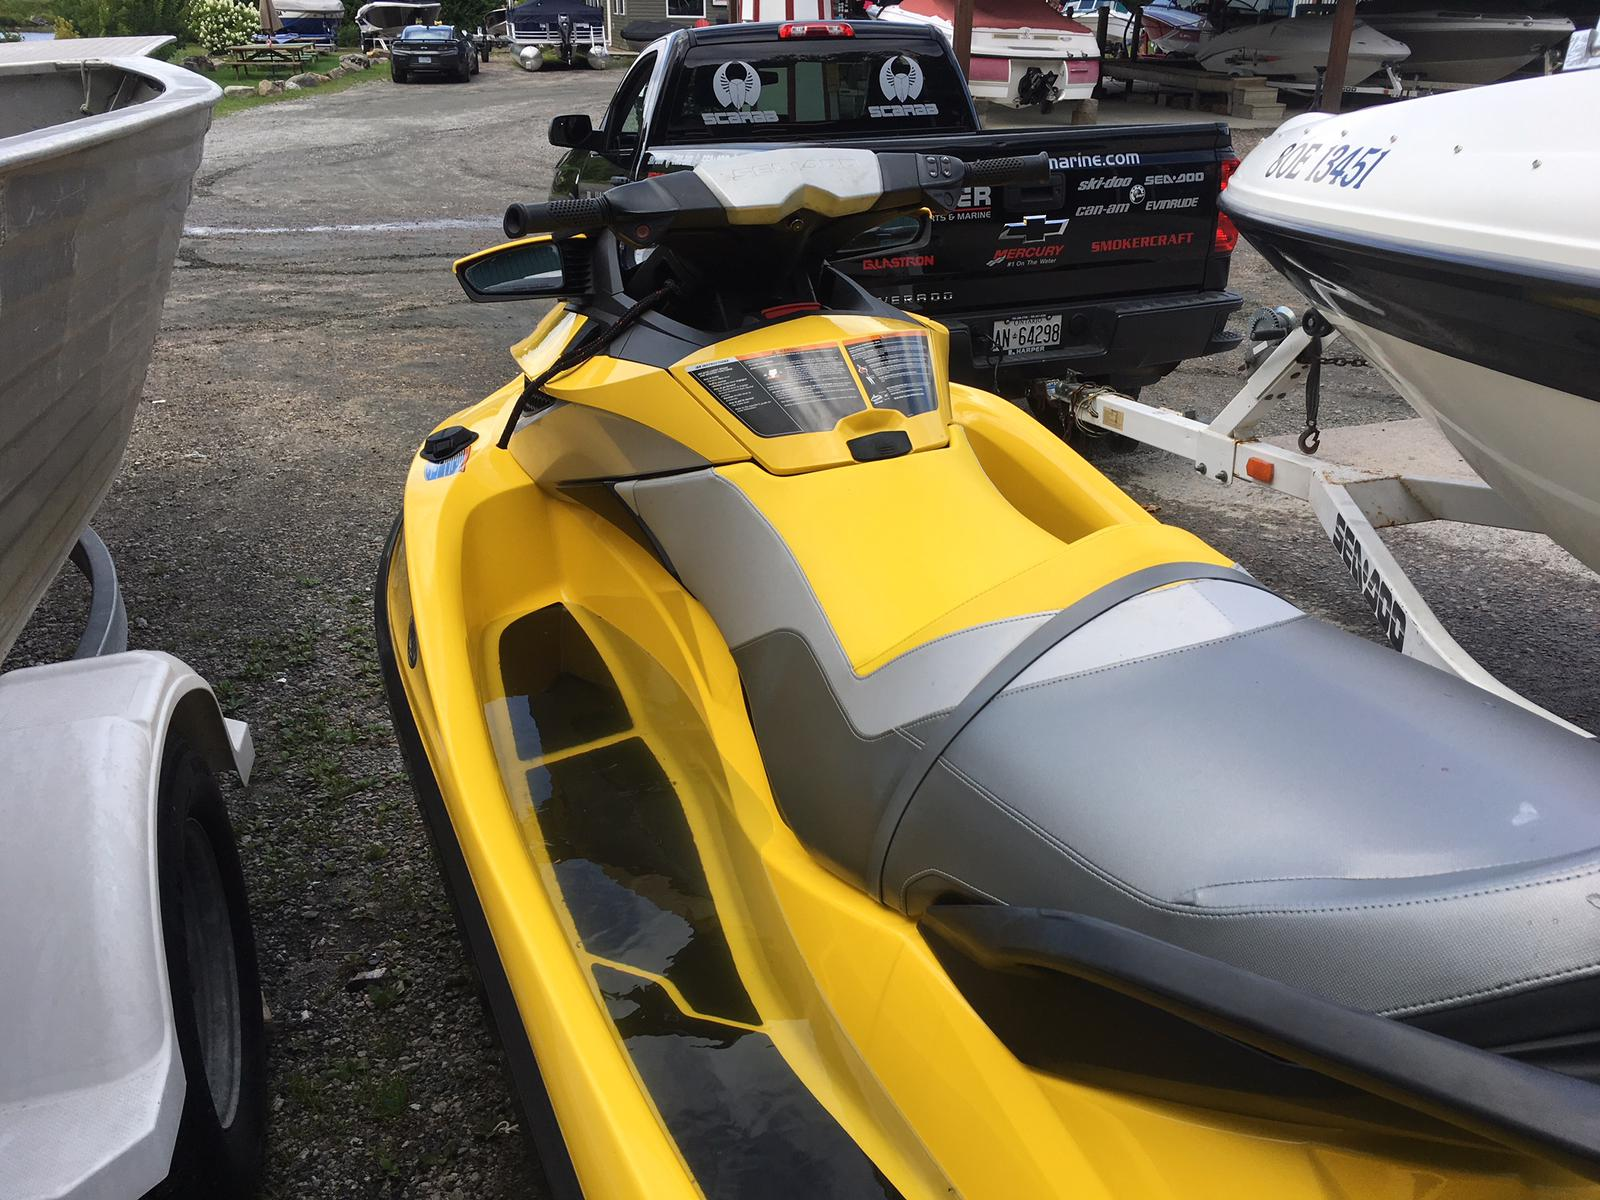 2010 Sea Doo PWC boat for sale, model of the boat is RXT 215 & Image # 2 of 2